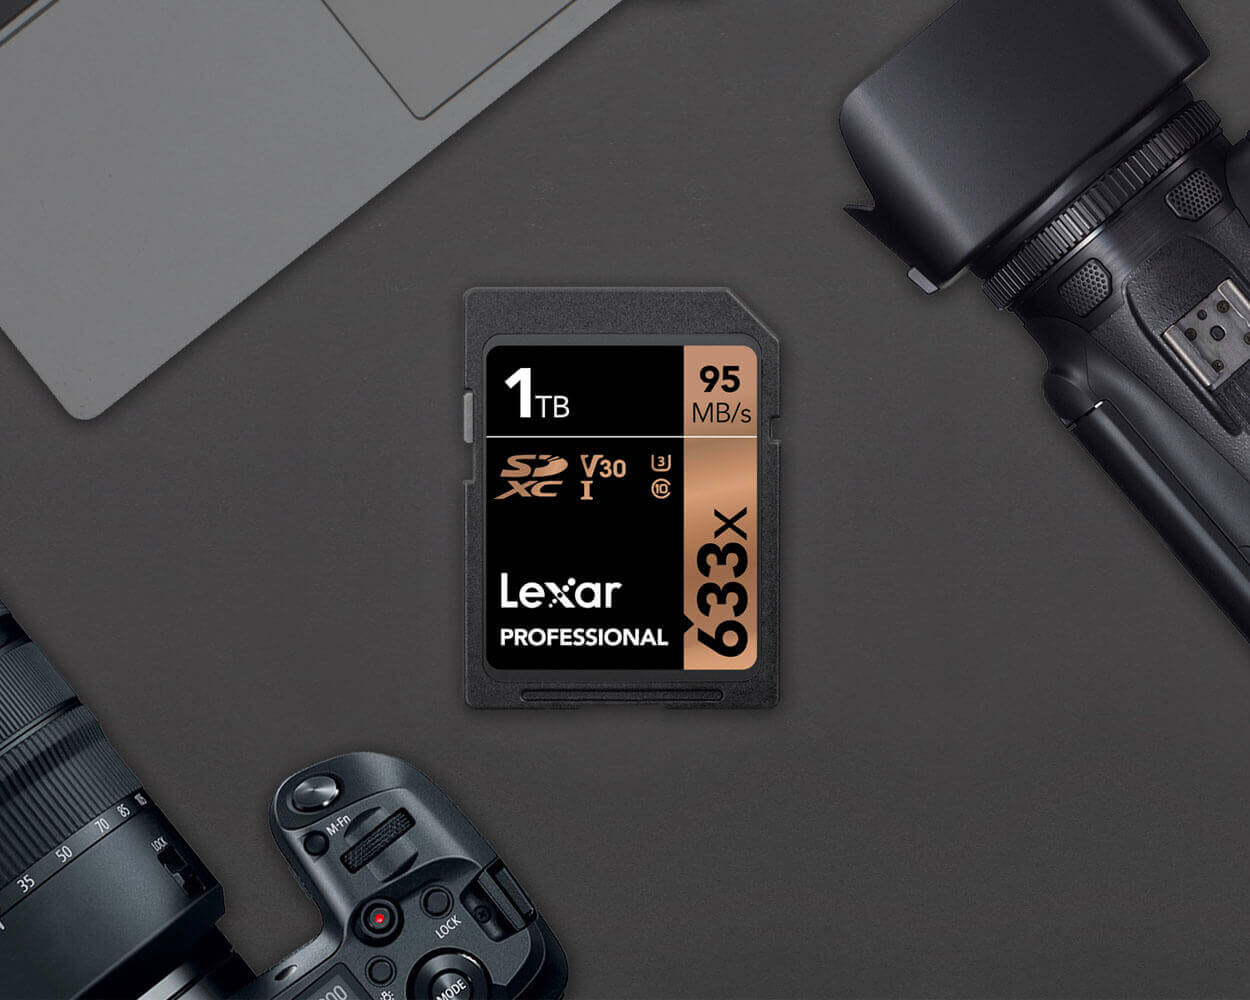 CES 2019: Lexar Has Unveiled The First Ever 1TB SDXC Flash Memory Card For Cameras